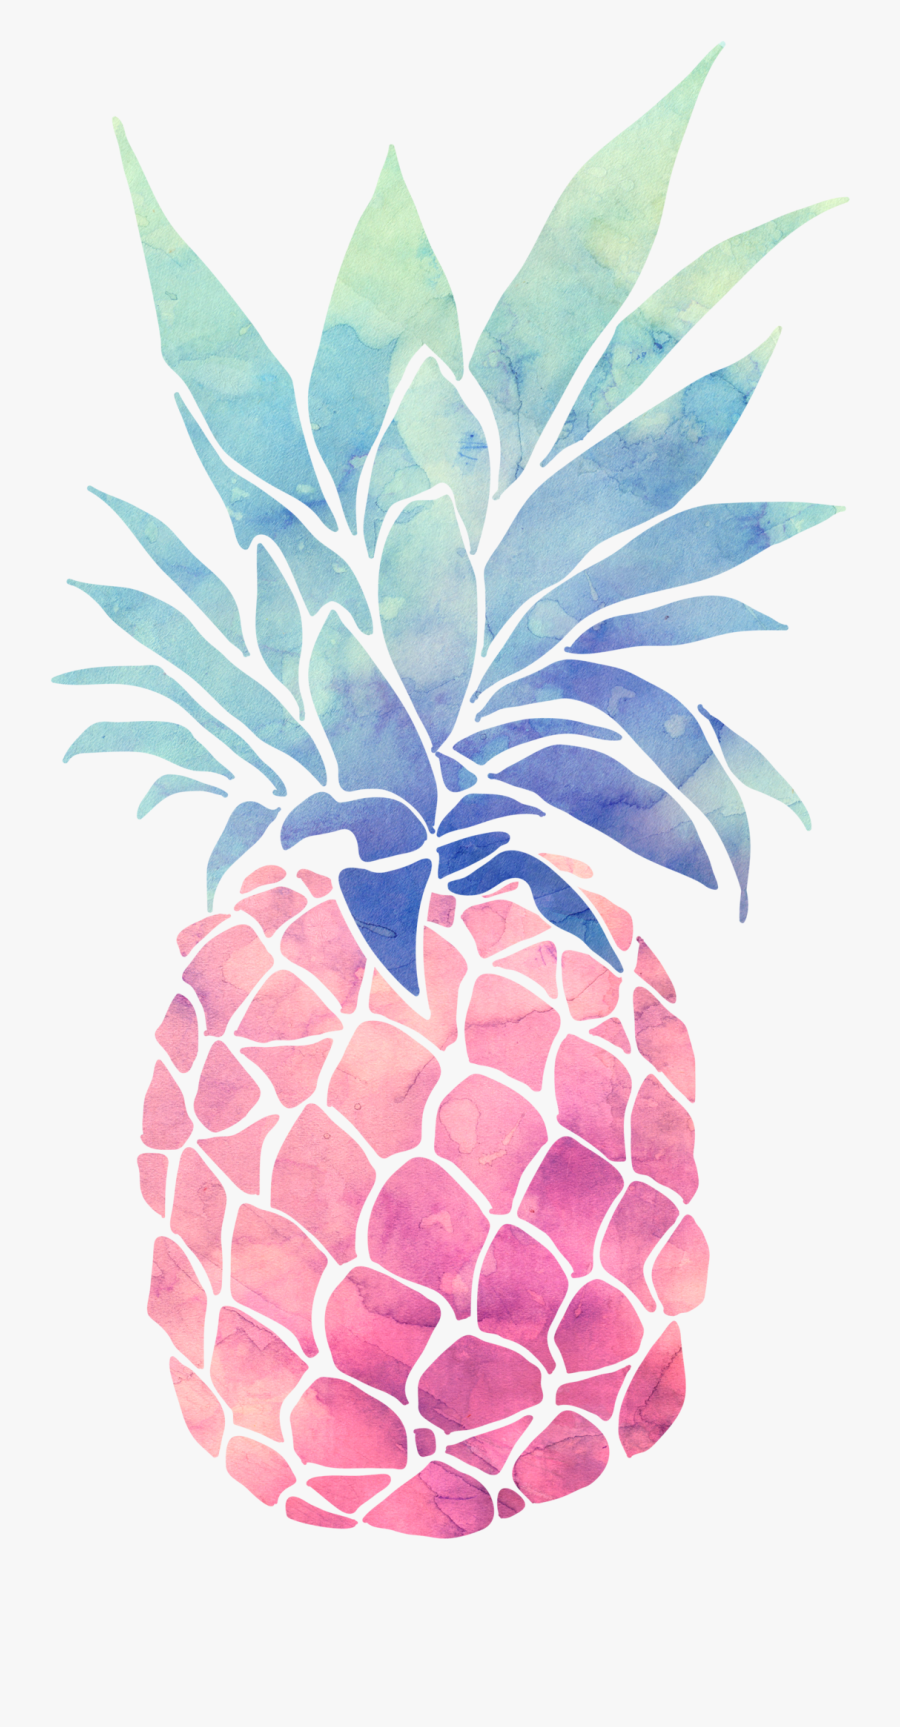 Temporary Tattoos Pineapples - Pineapple Wallpaper For Ipad, Transparent Clipart